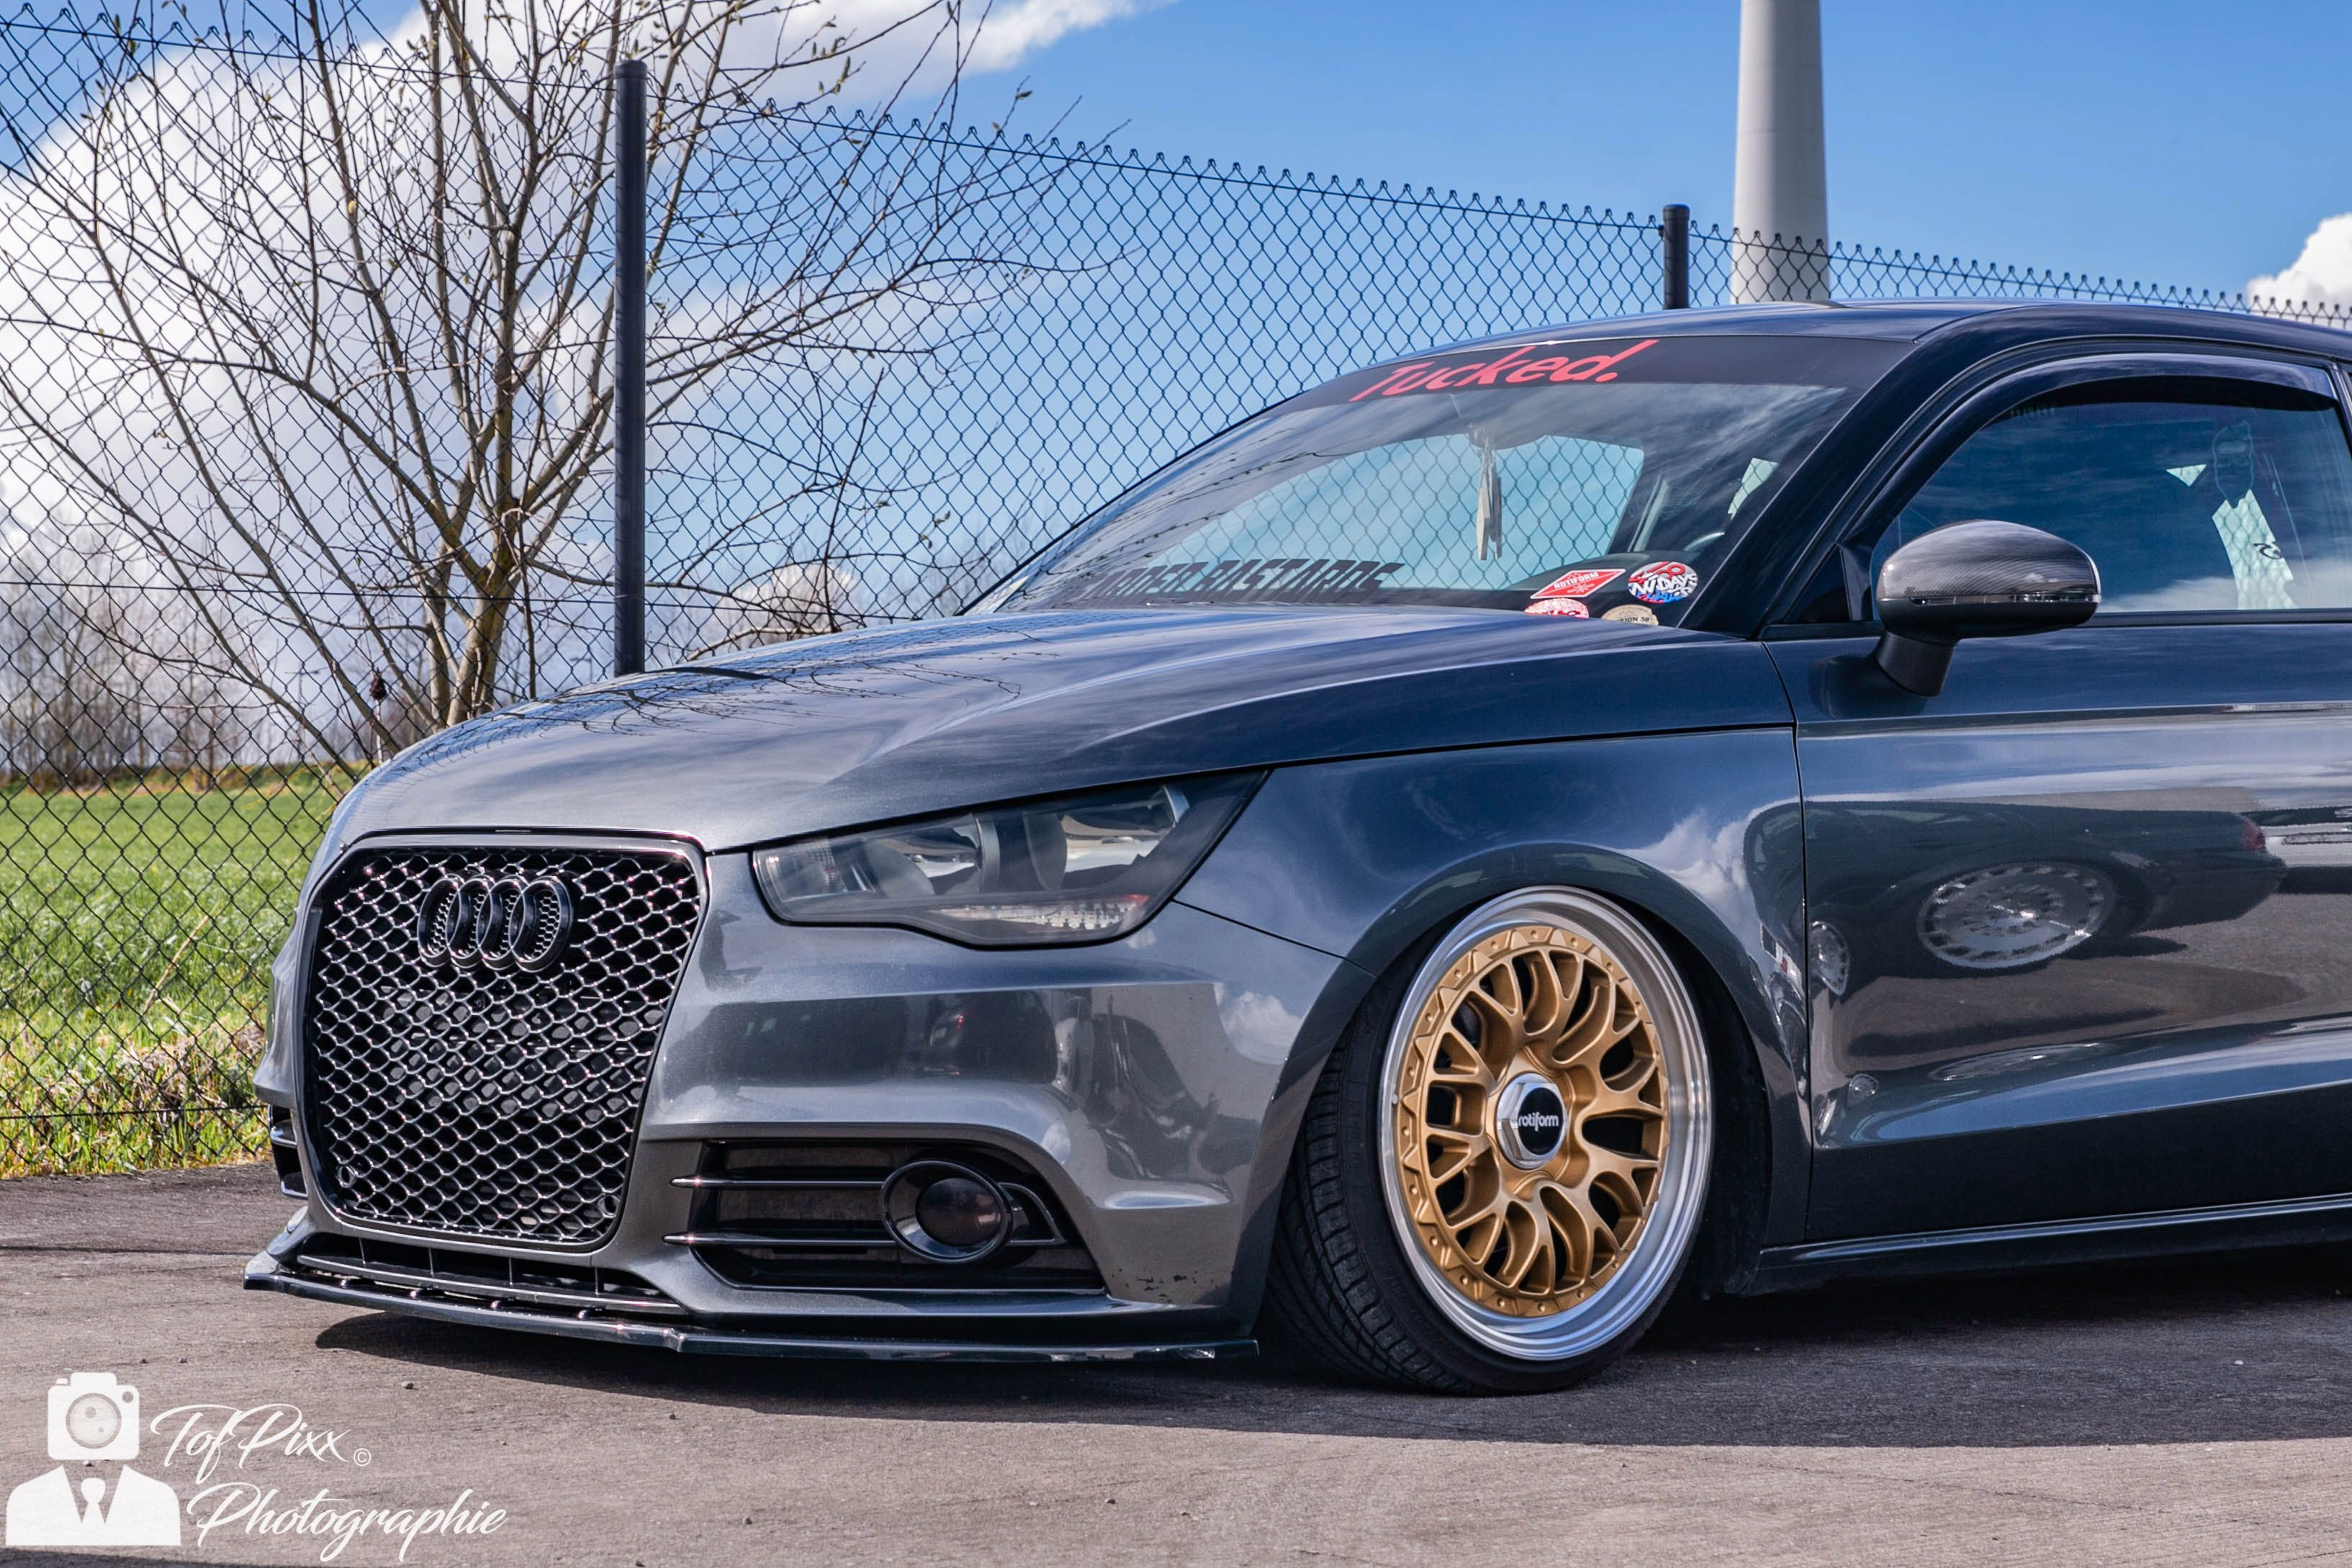 Audi A1 Audia1 Auto Voiture Cars Airlift Airride Low